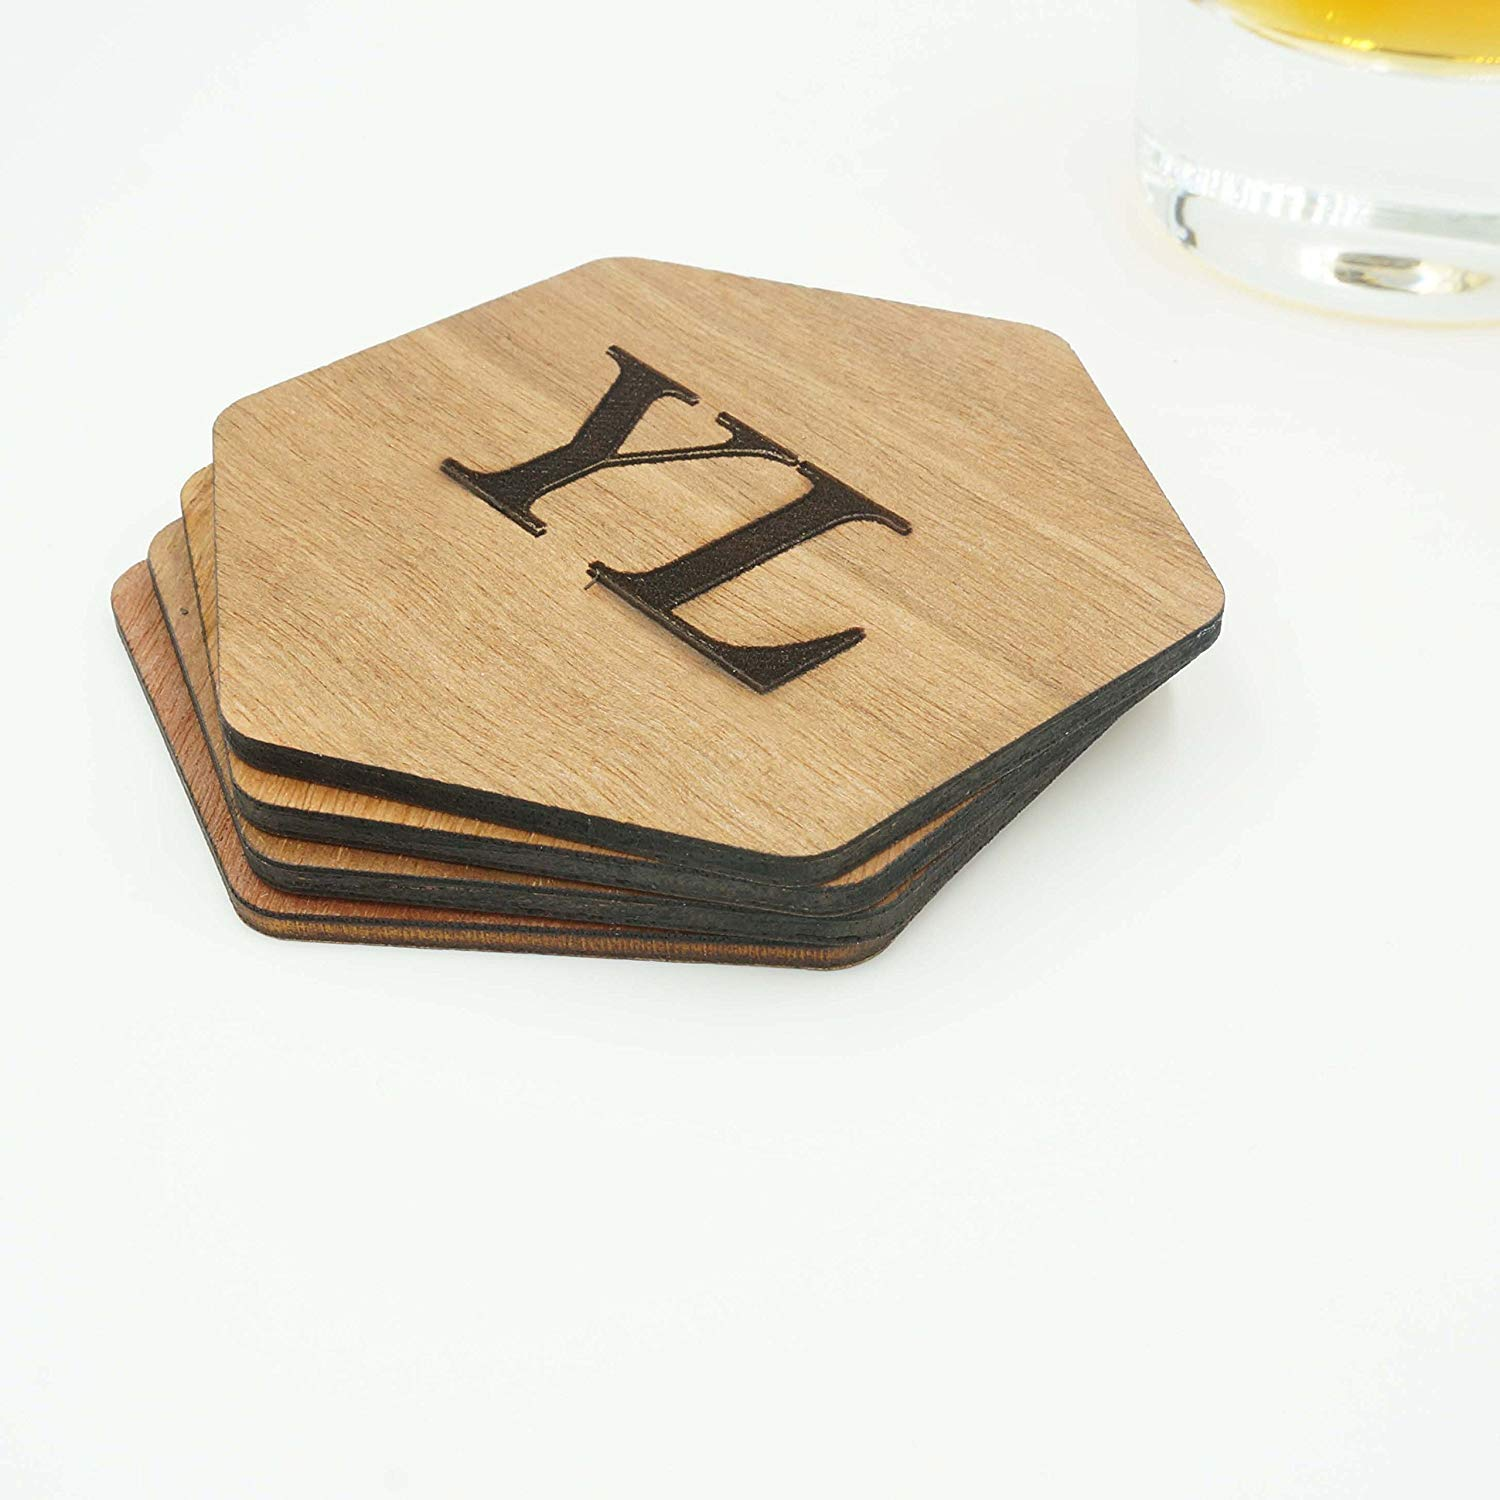 Custom Modern Hexagon Wooden Coasters Name Initials Wedding Coasters Personalized Engraved Cut Drink Holders Whiskey Gift Idea